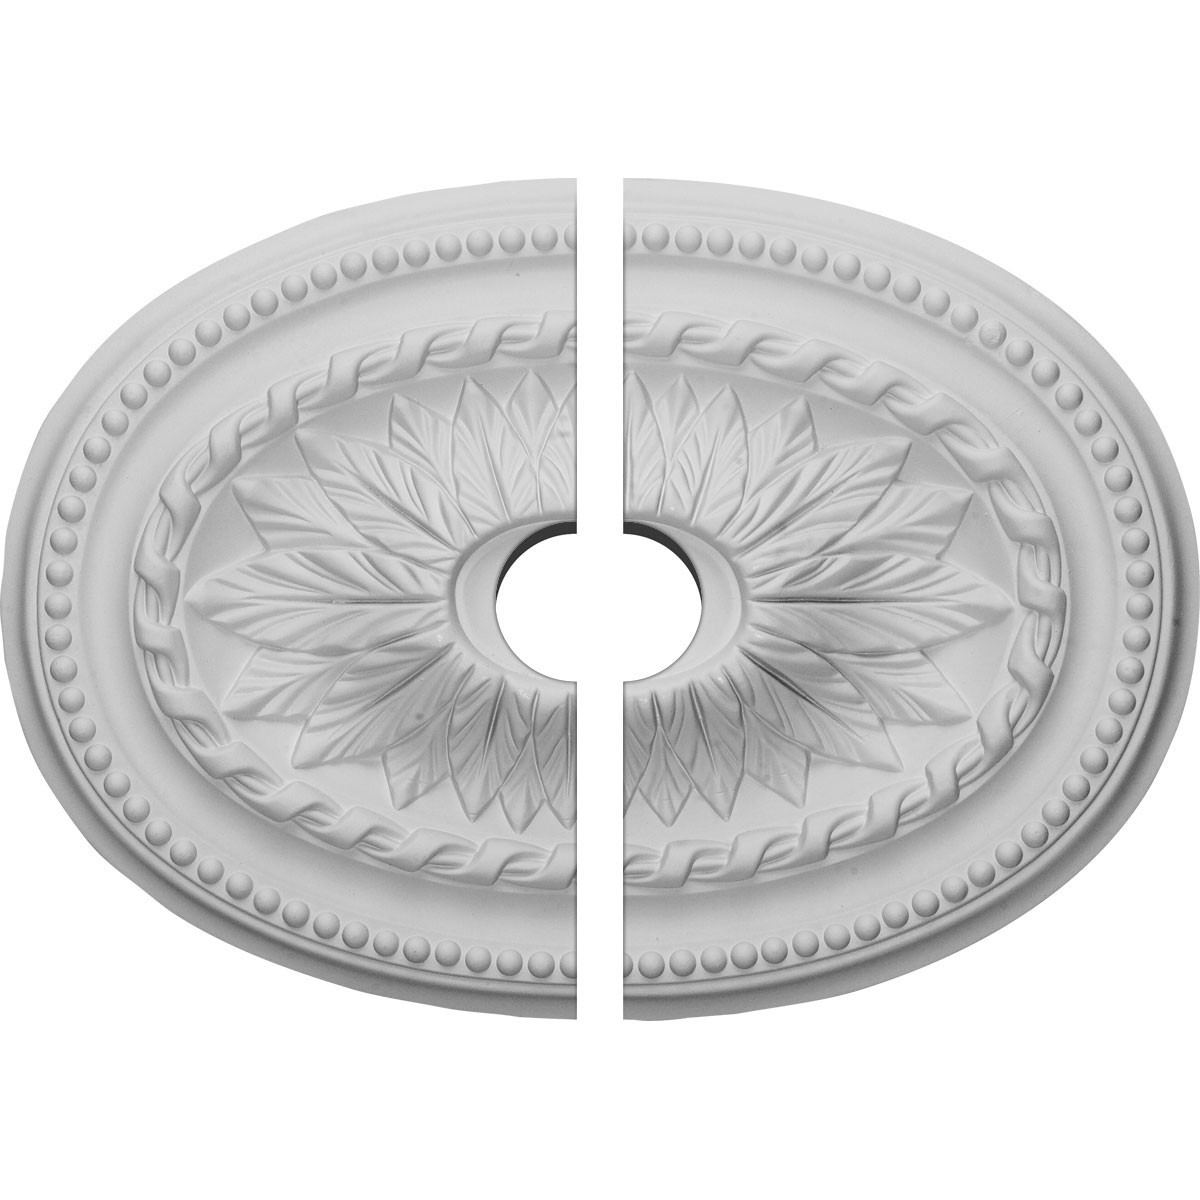 "EM-CM18SA2-03500 - 18 1/2""W x 13 1/2""H x 3 1/2""ID x 1 7/8""P Saverne Ceiling Medallion, Two Piece (Fits Canopies up to 3 1/2"")"